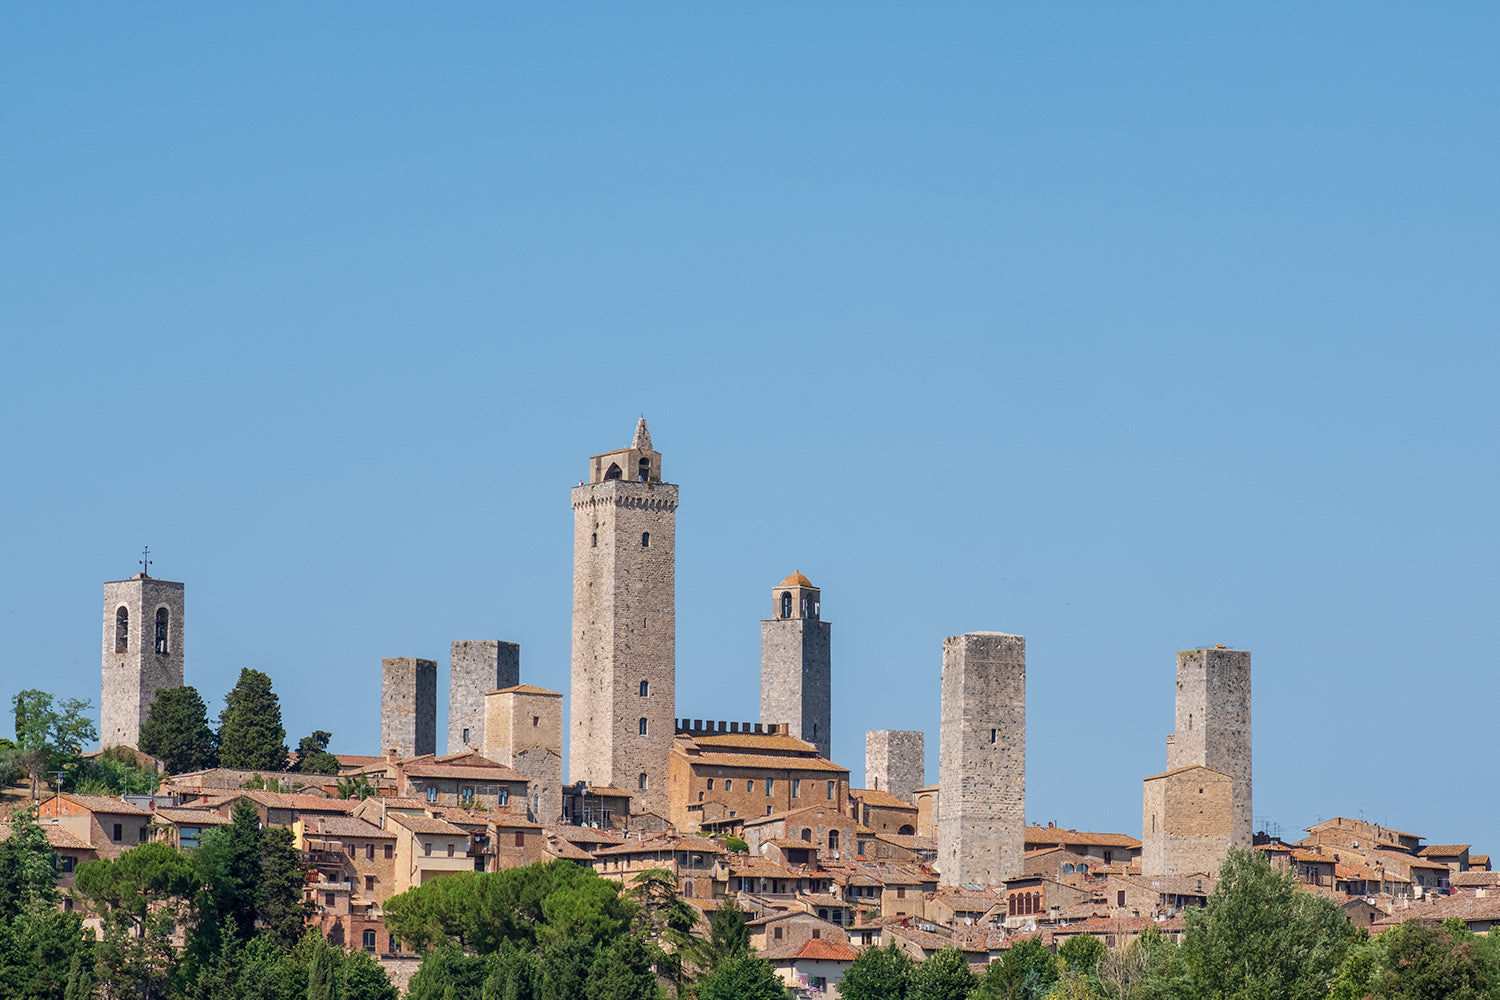 A clear blue sky behind the medieval town of San Gimignano in the province of Siena, Italy. A series of towers loom above the town.